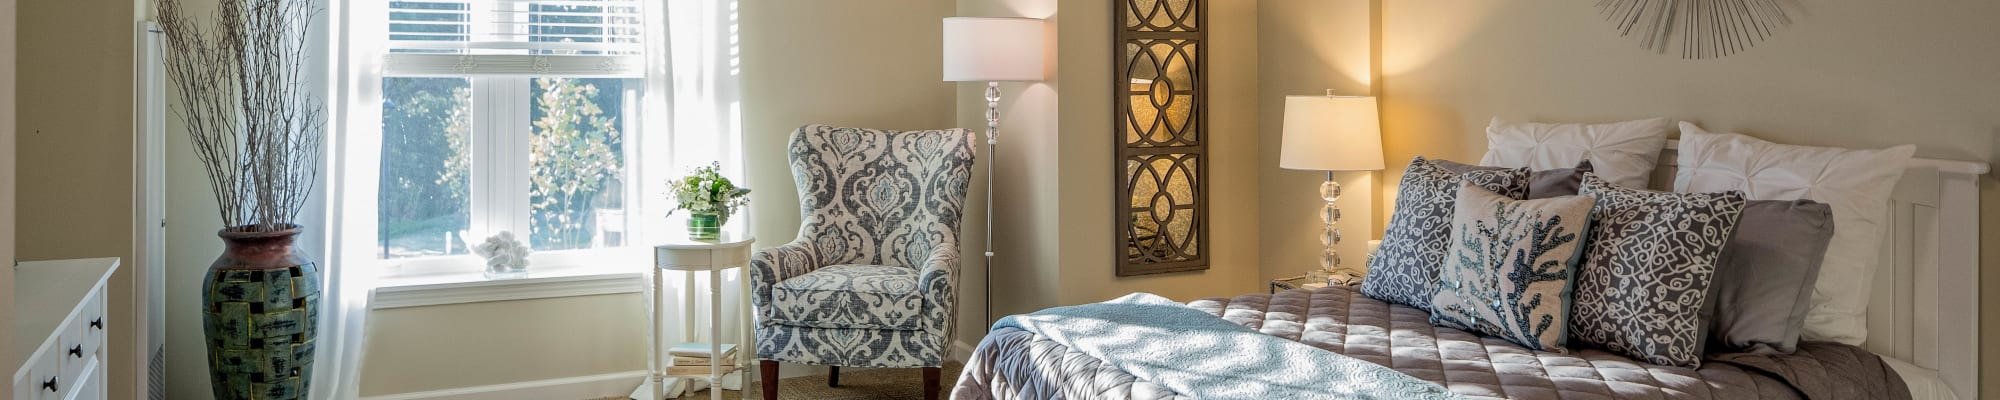 Lifestyle suites at Maplewood at Darien in Darien, Connecticut